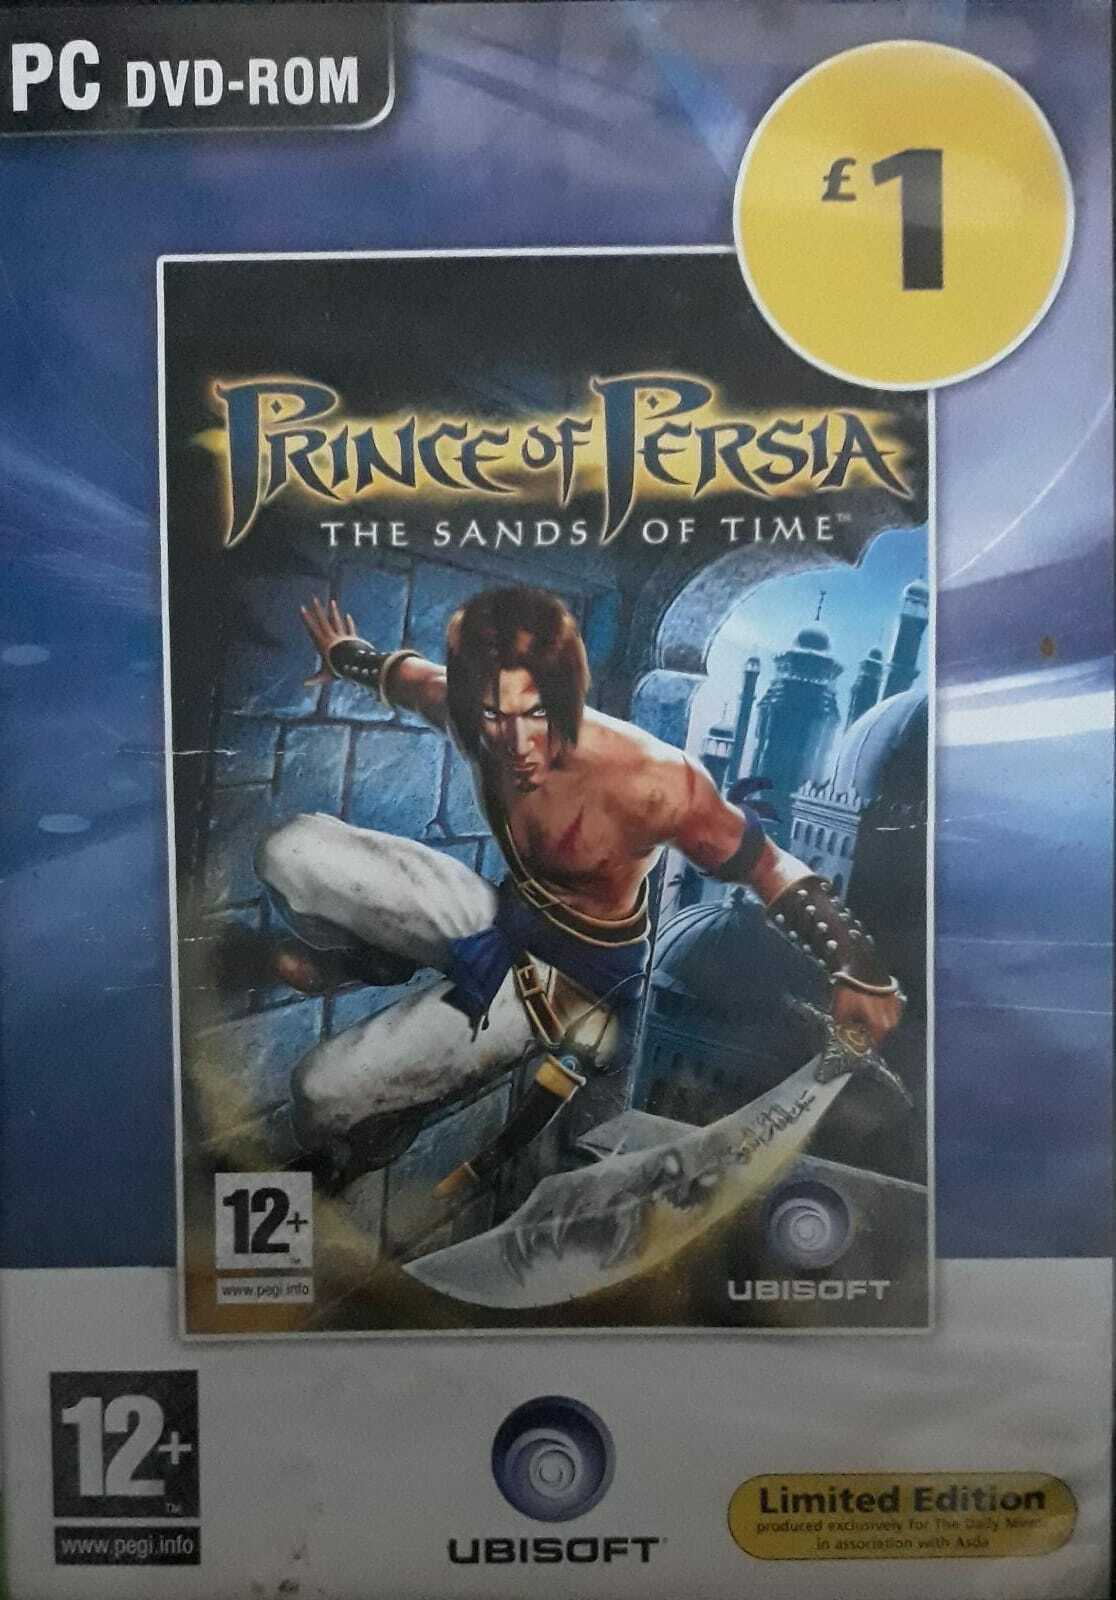 Prince Of Persia The Sands Of Time Limited Edition Pc Cd Dvd Rom Games For Sale